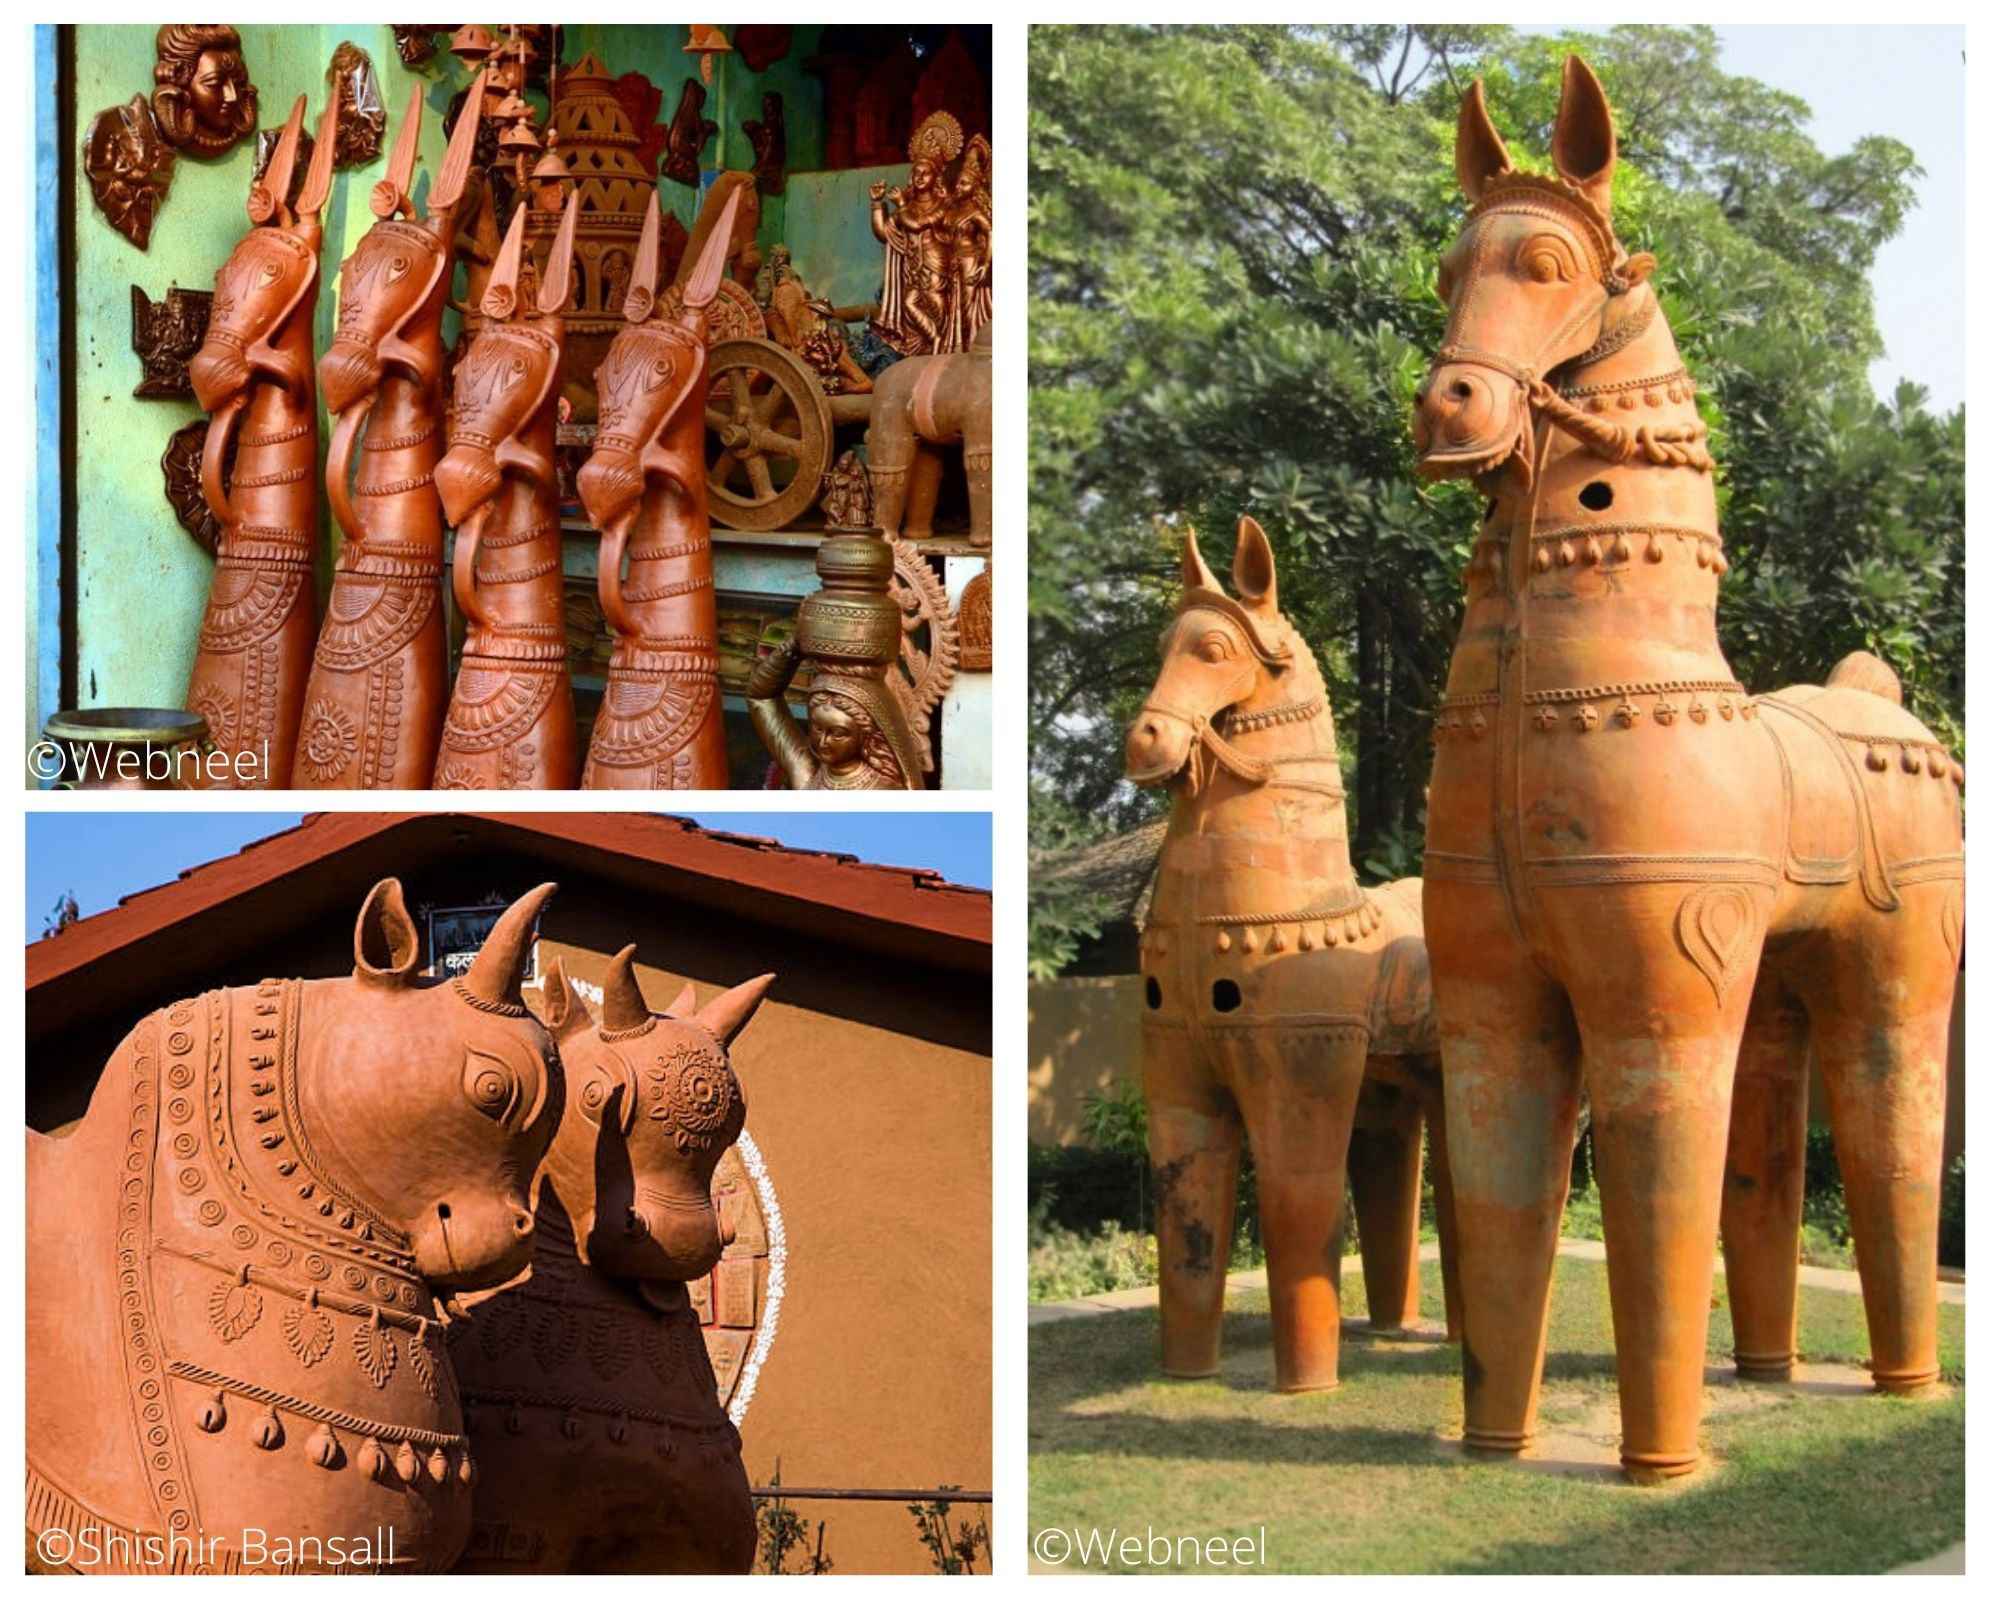 terracotta objects in India